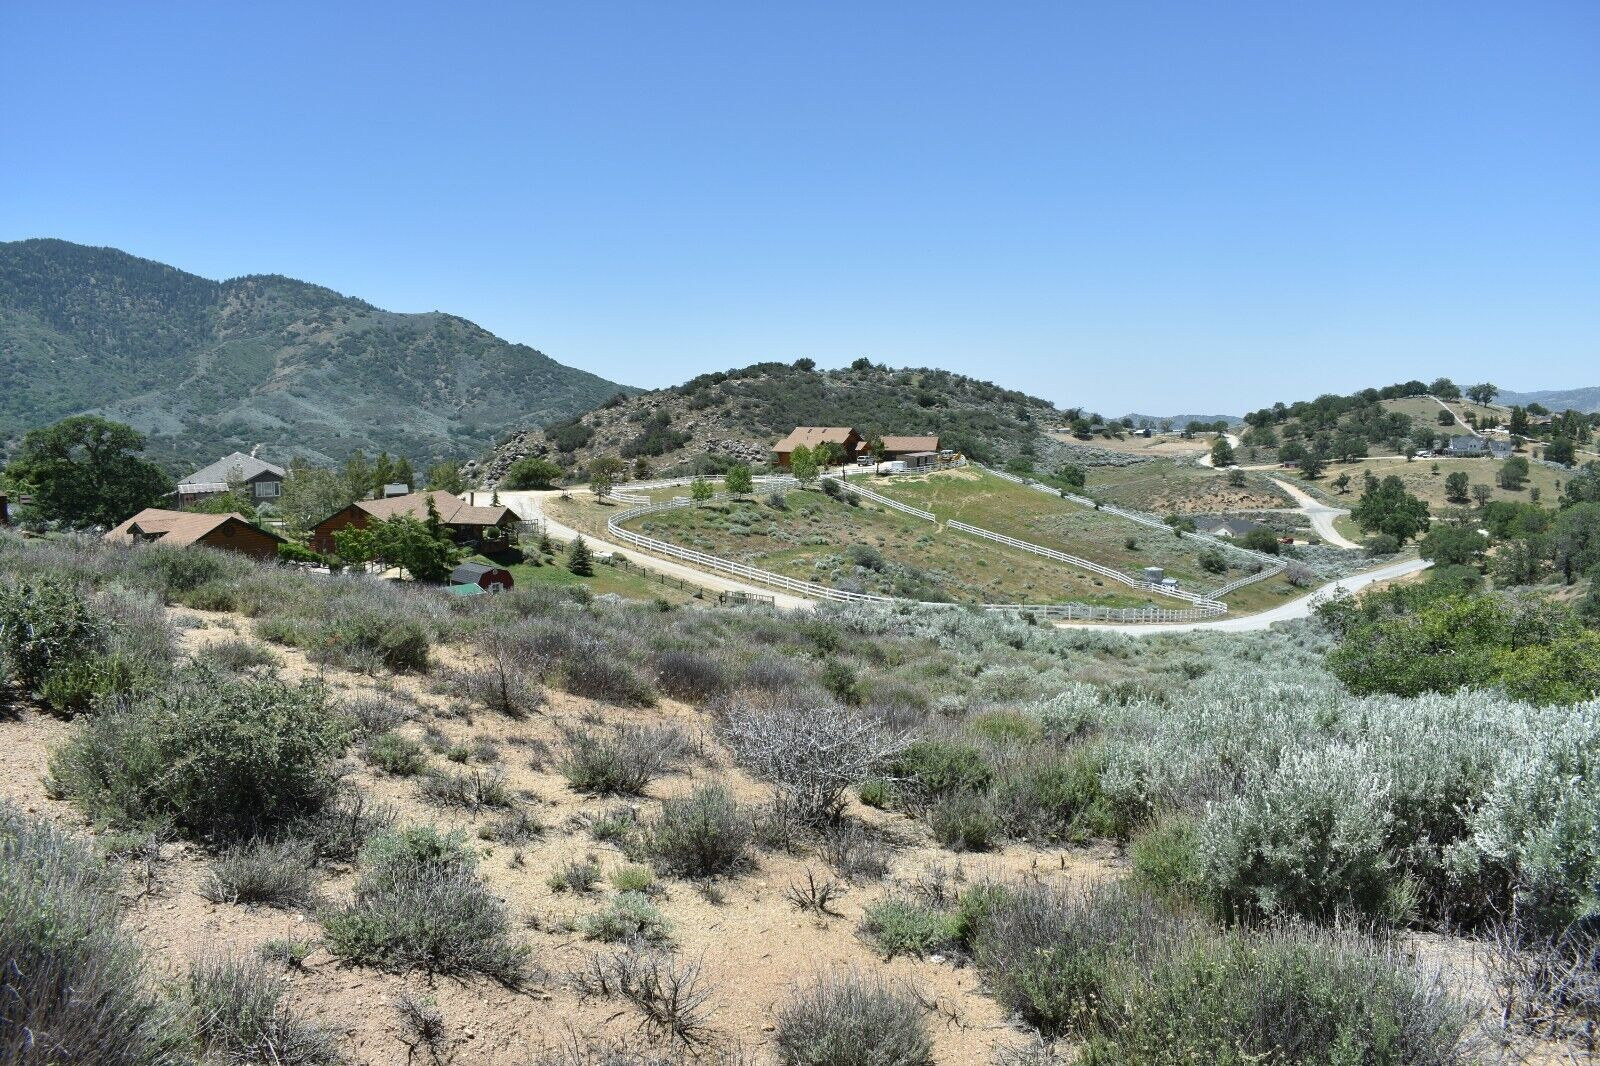 California- Tehachapi Mountains- Cabin Site- 2 Acres- Electric / Paved Road - $4,999.00